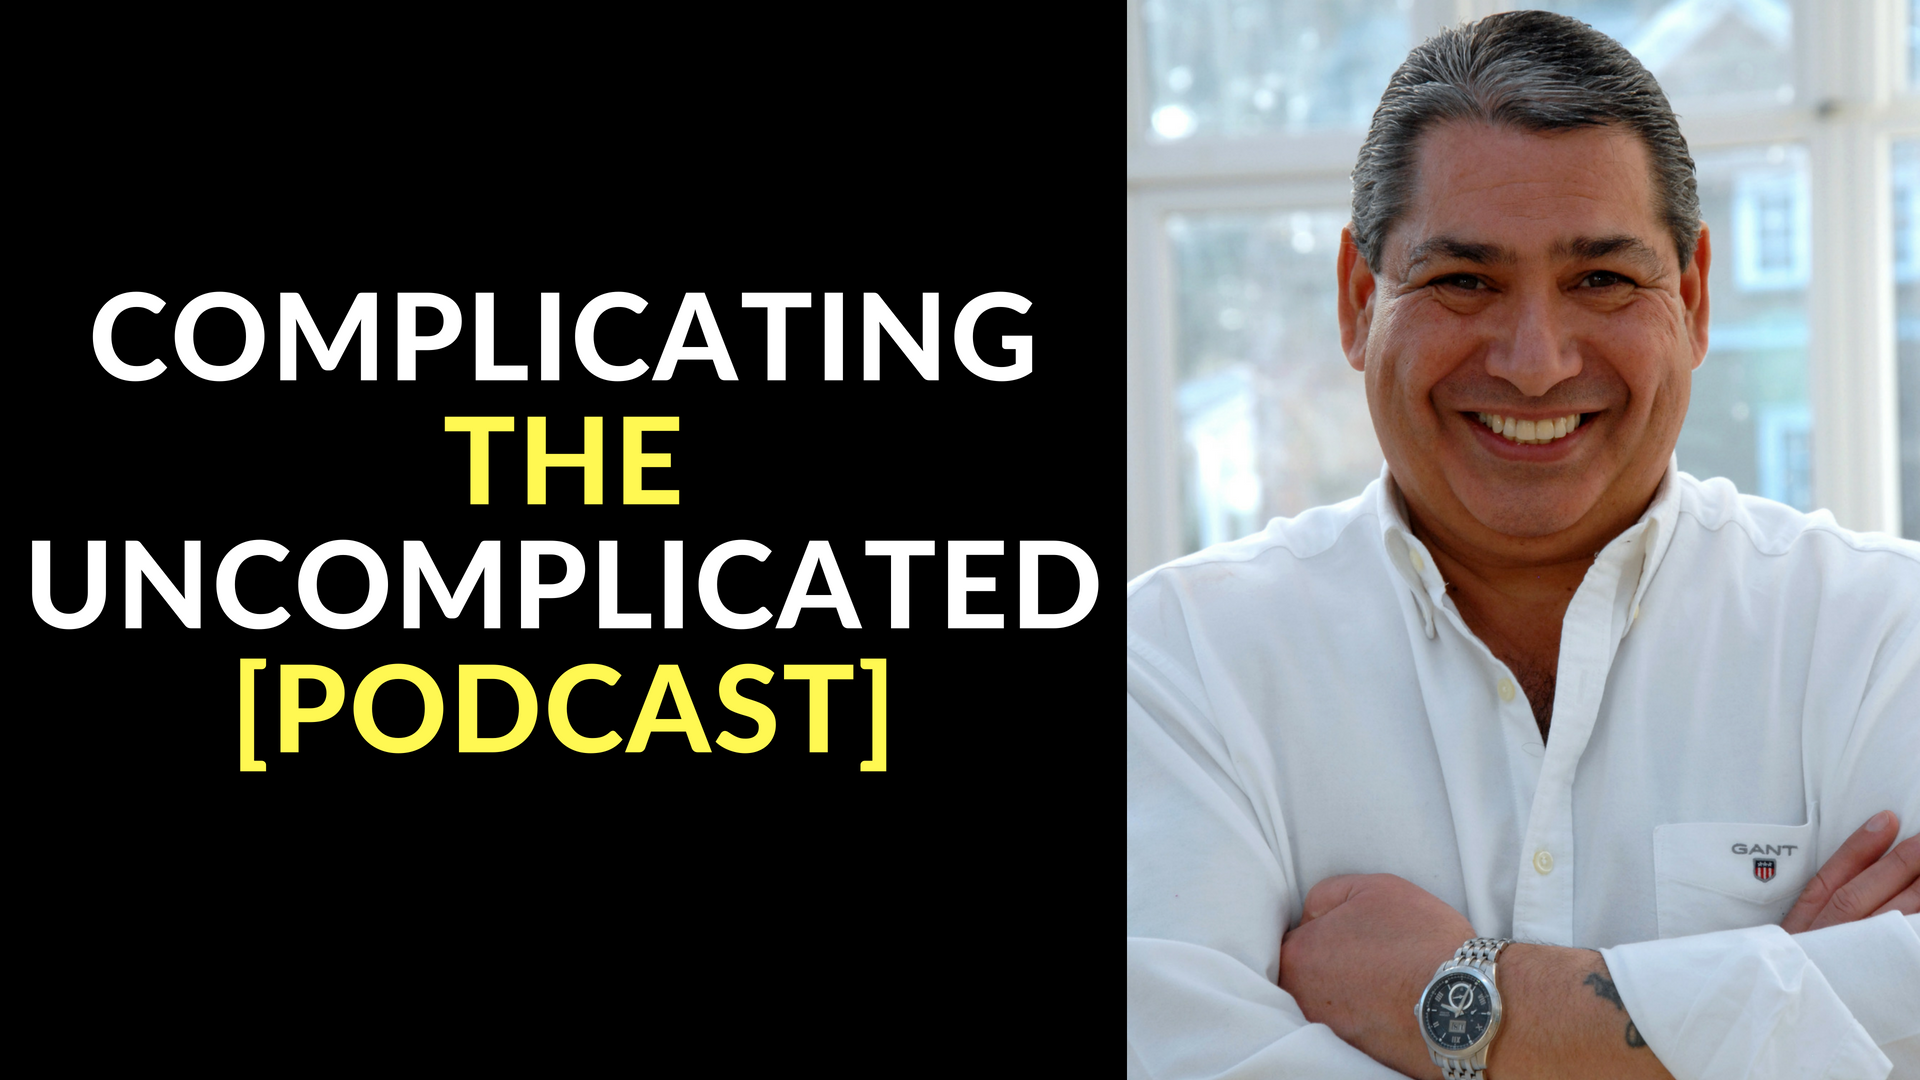 Complicating the Uncomplicated [Podcast]